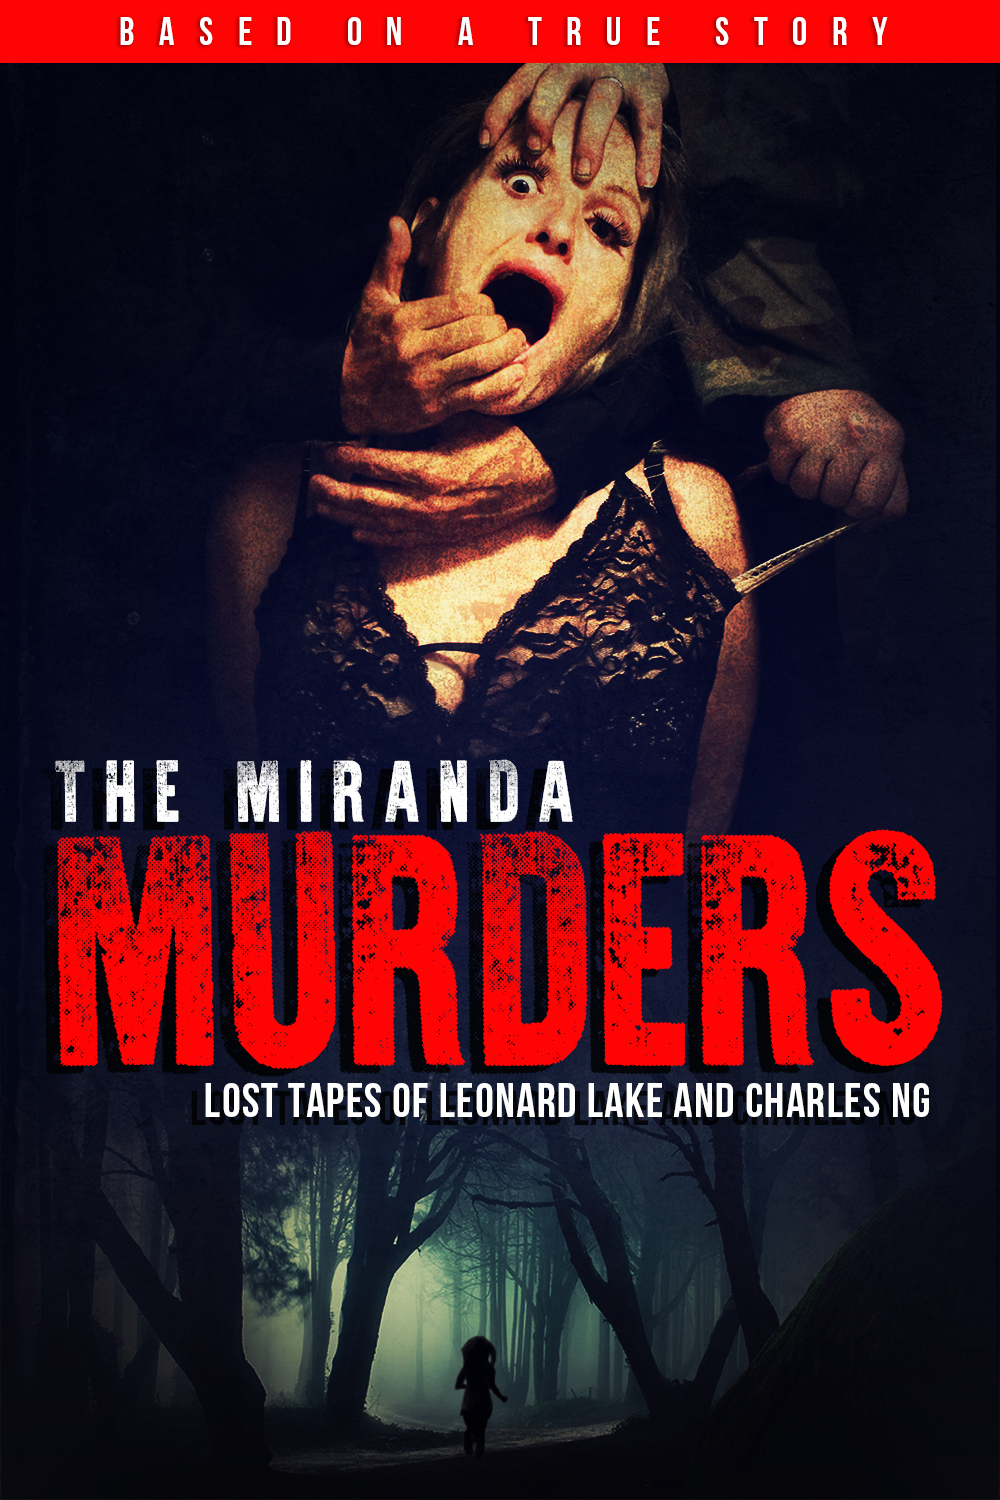 The Miranda Murders Lost Tapes Of Leonard Lake And Charles